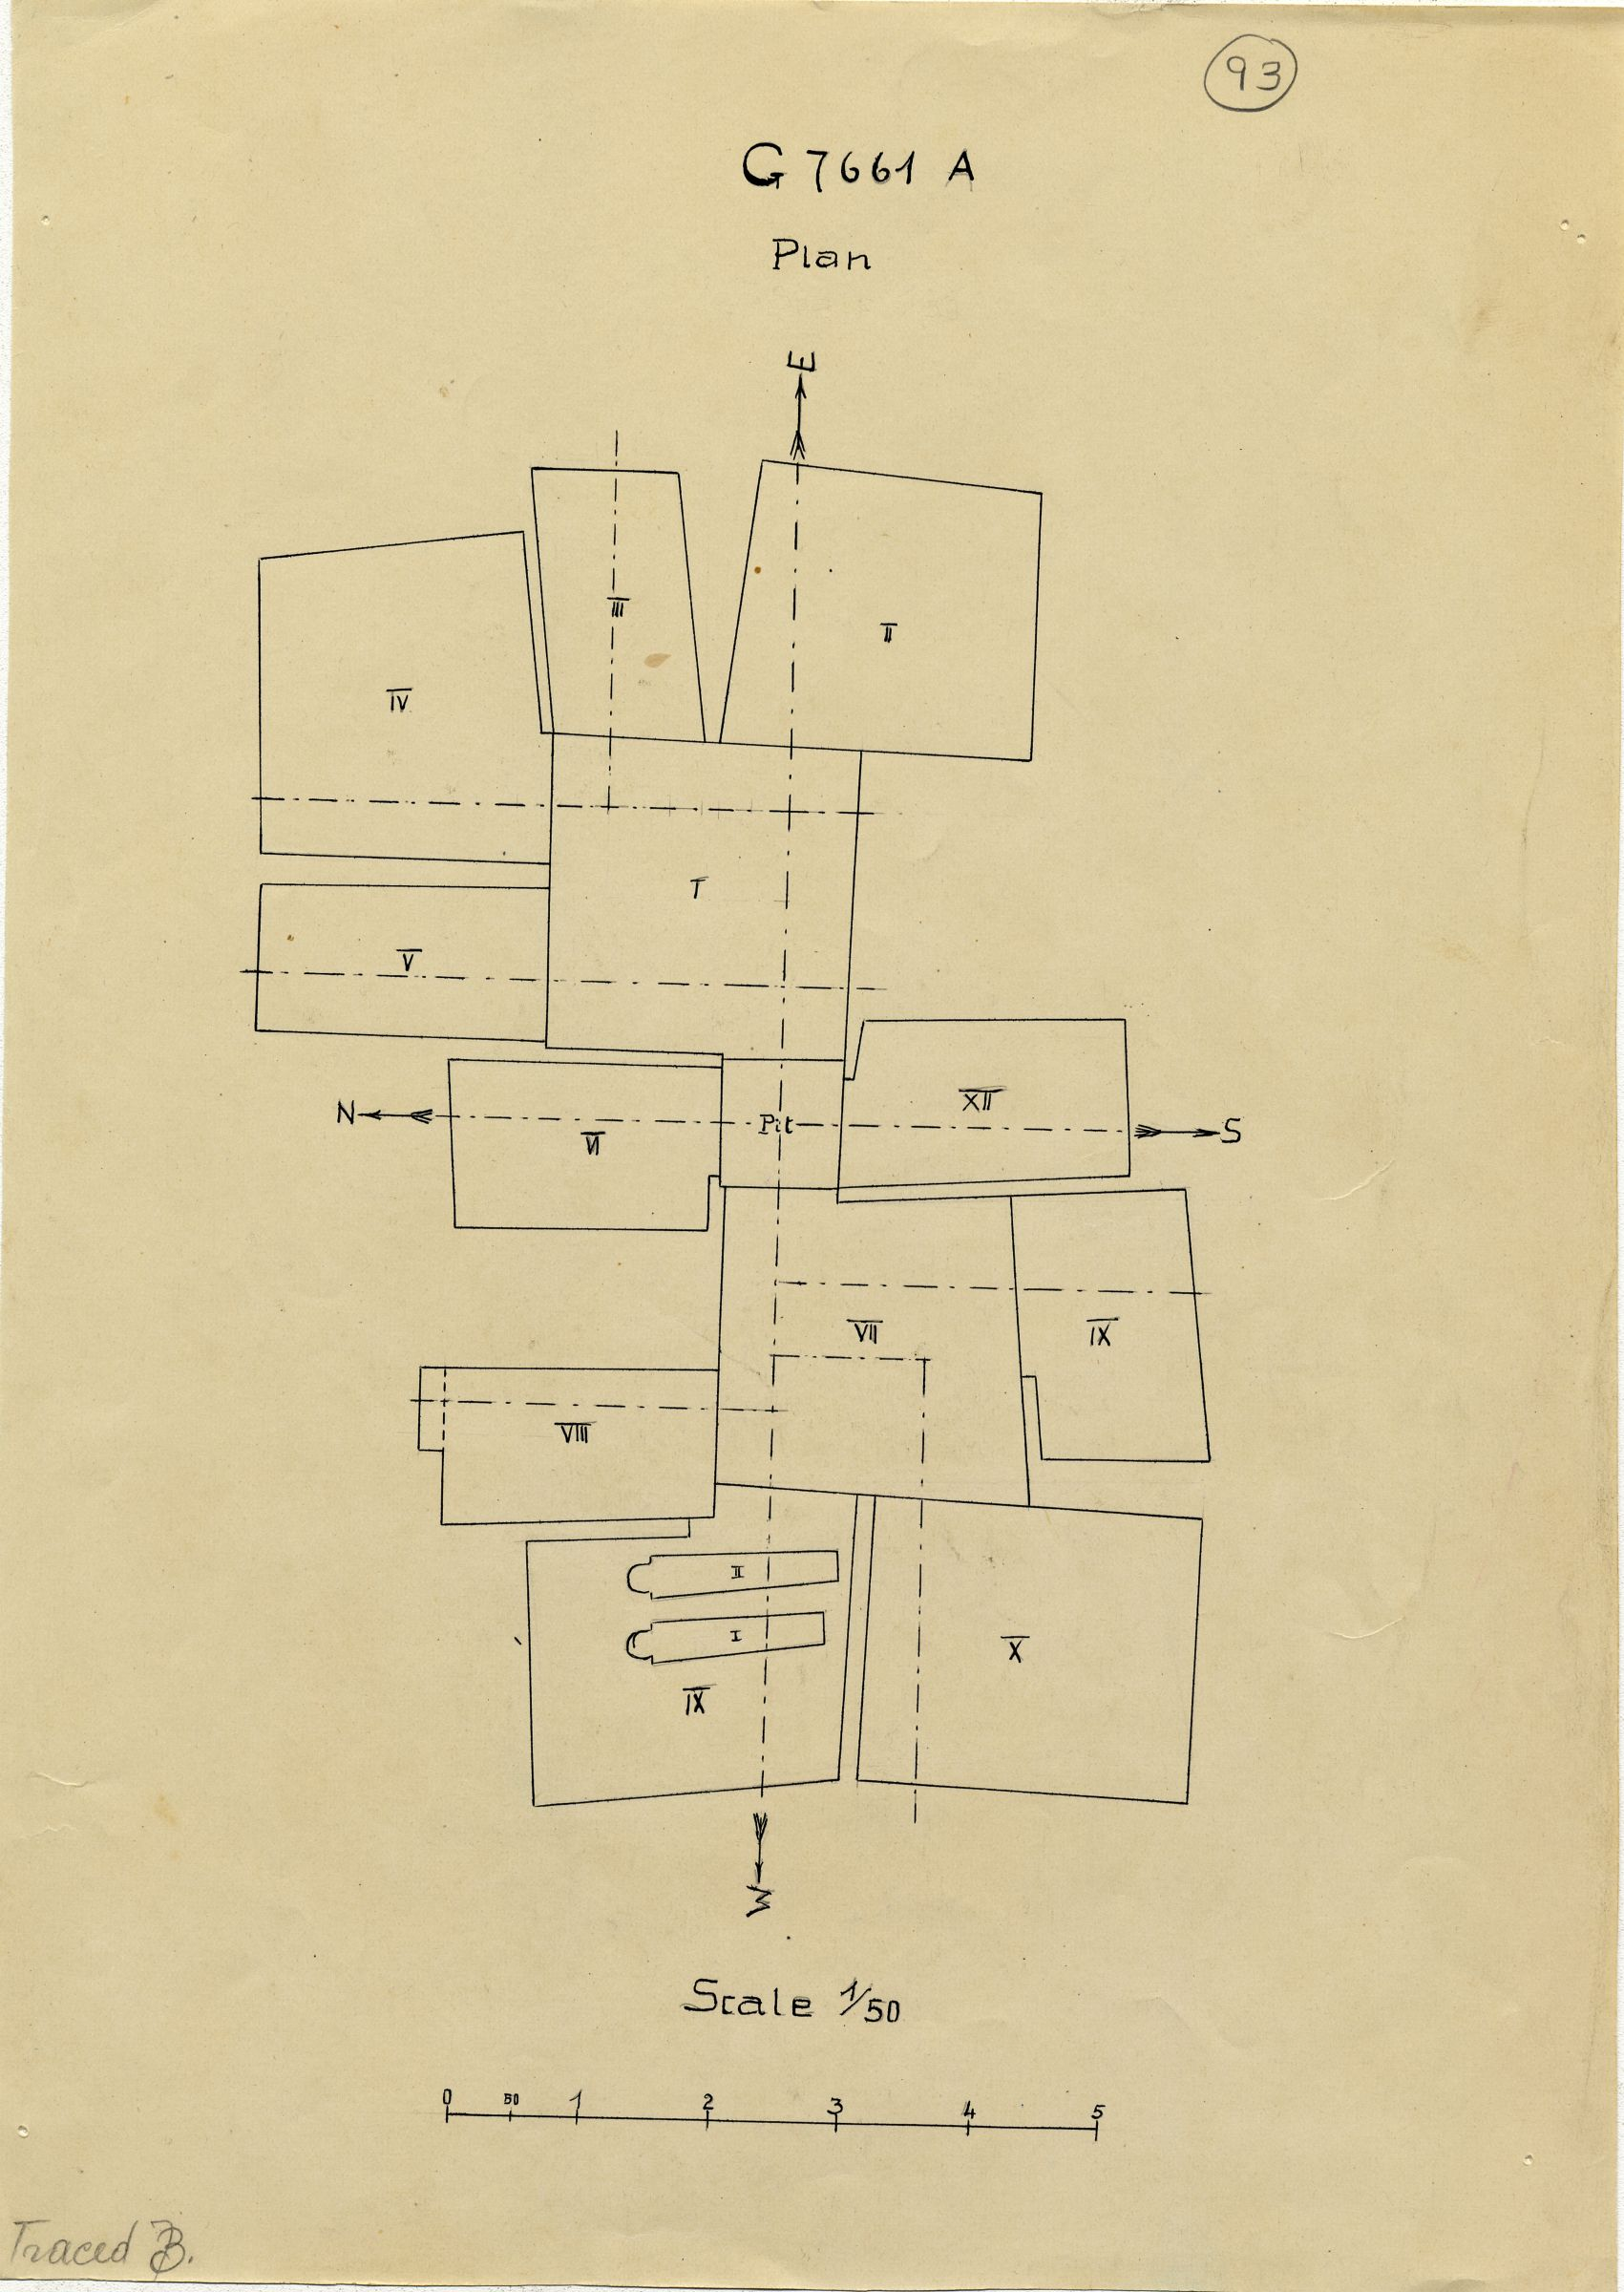 Maps and plans: G 7661, Shaft A